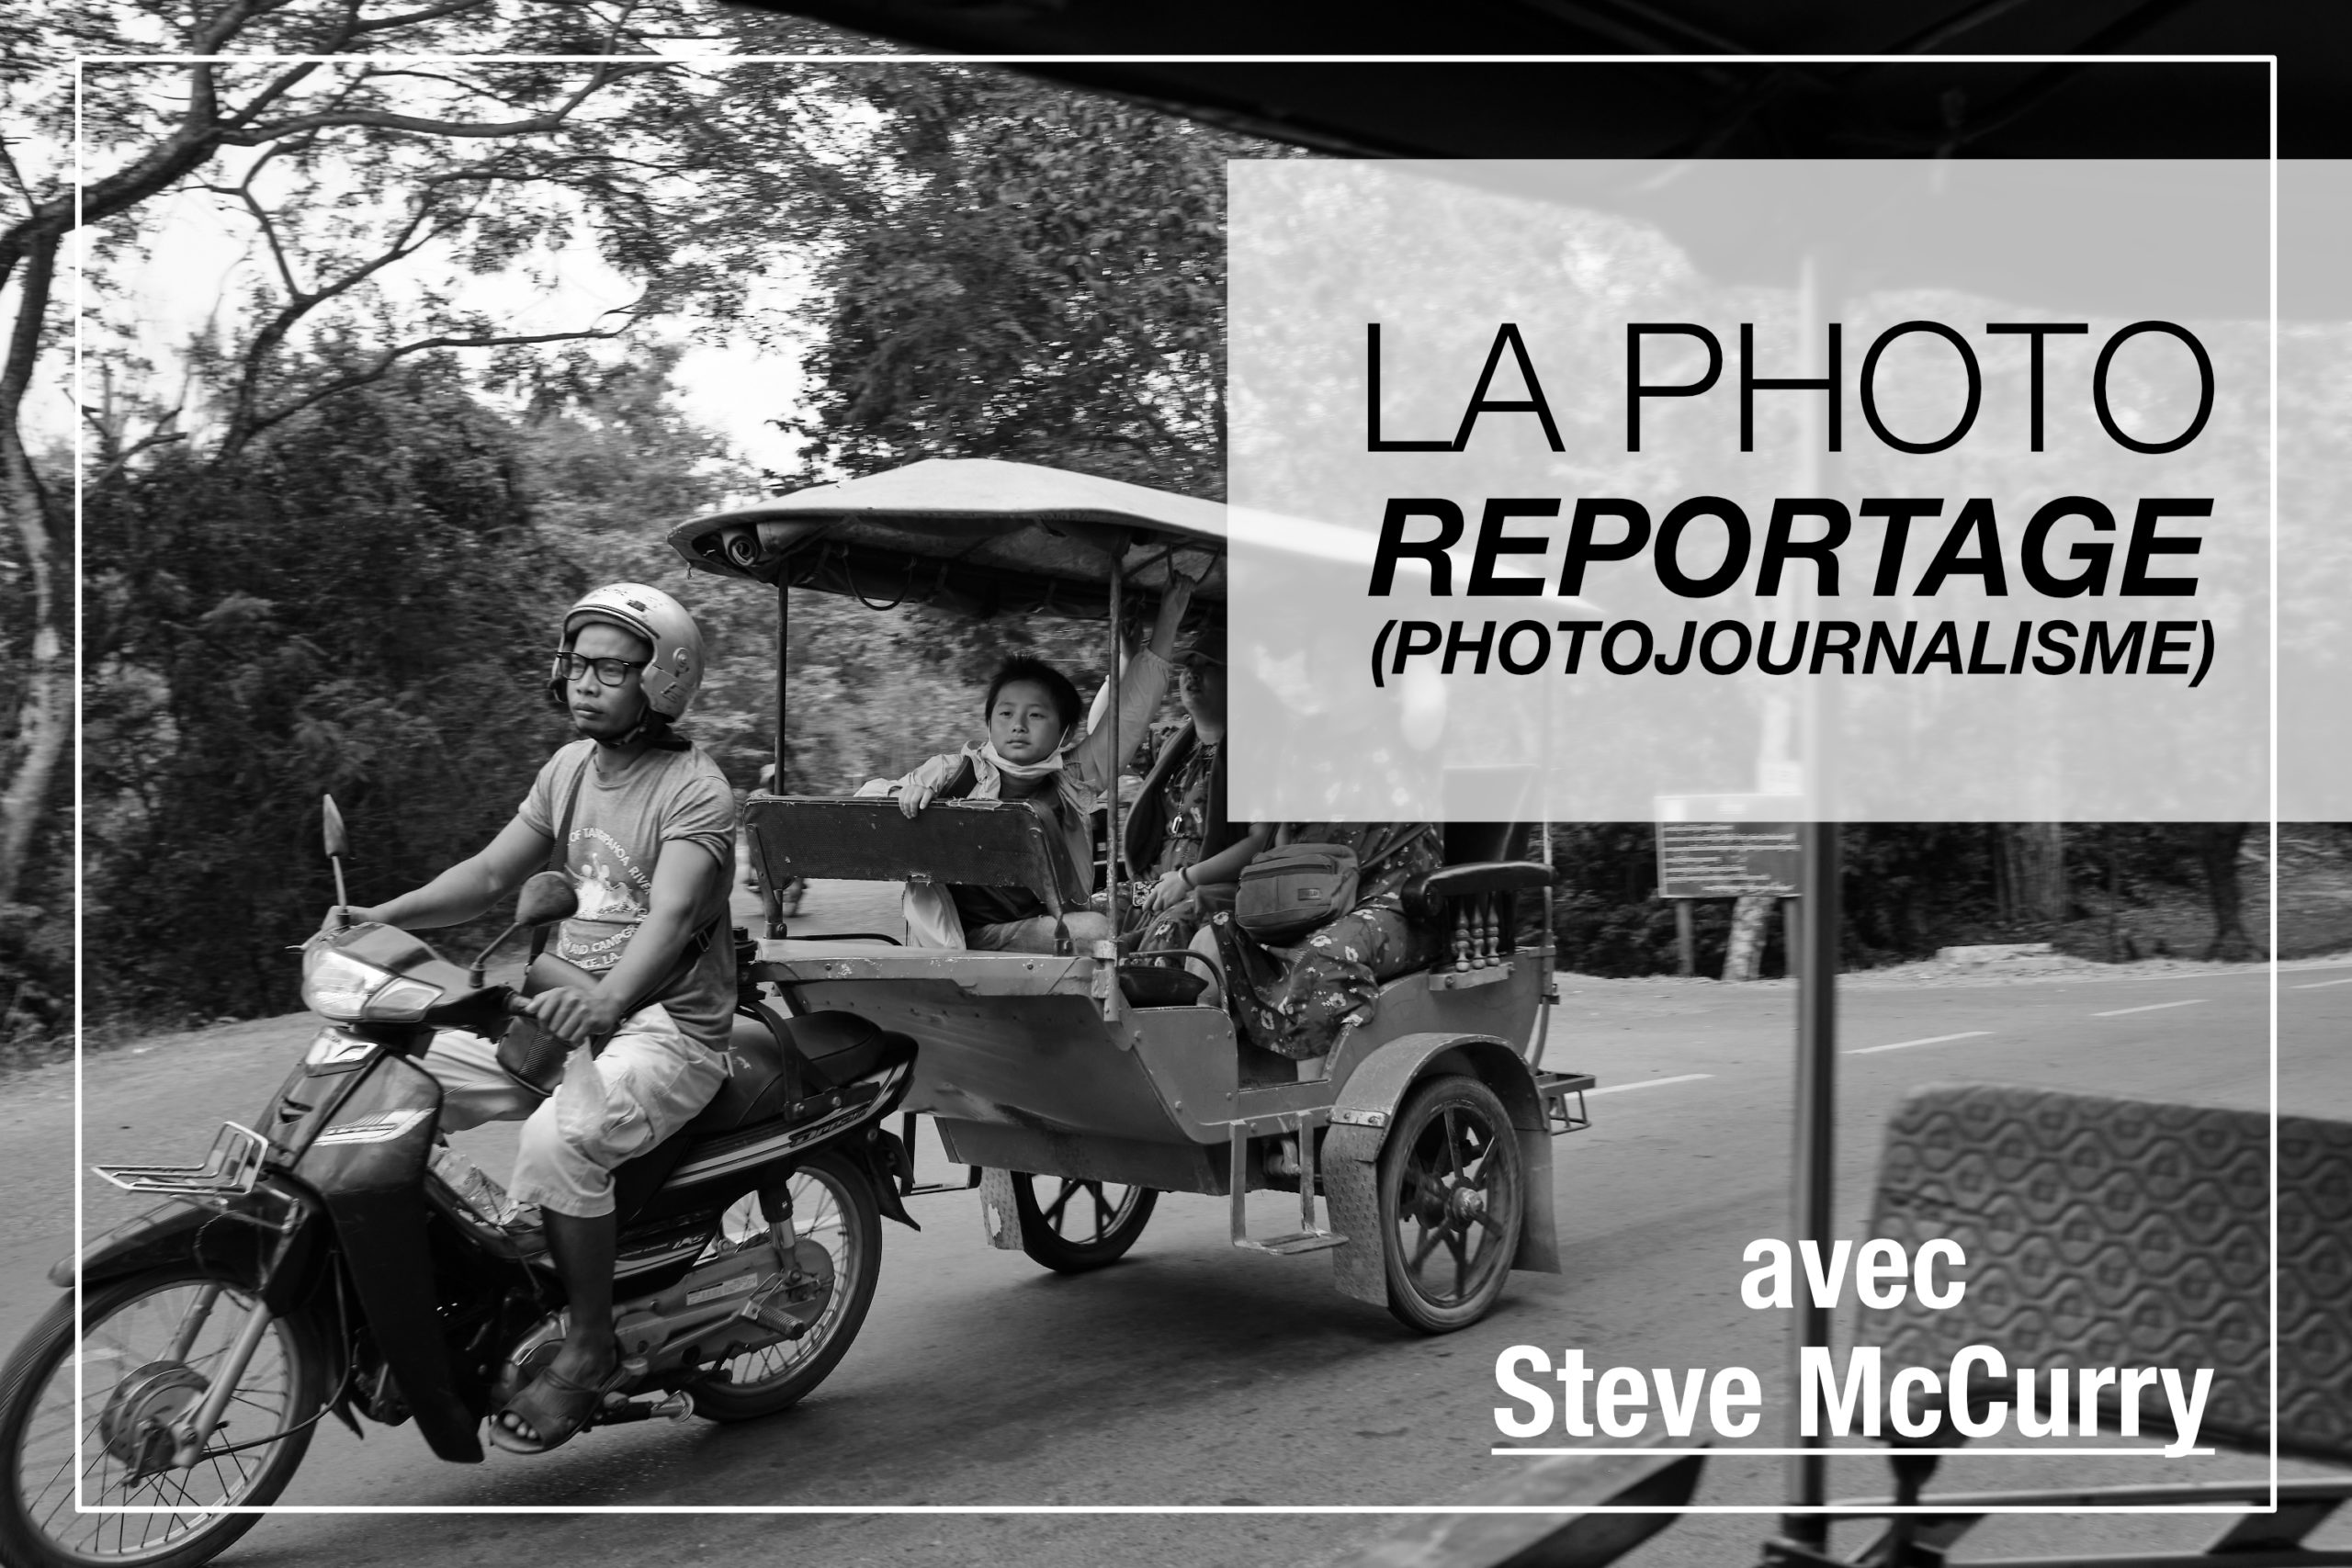 Cover Article - Photojournalisme avec Steve McCurry